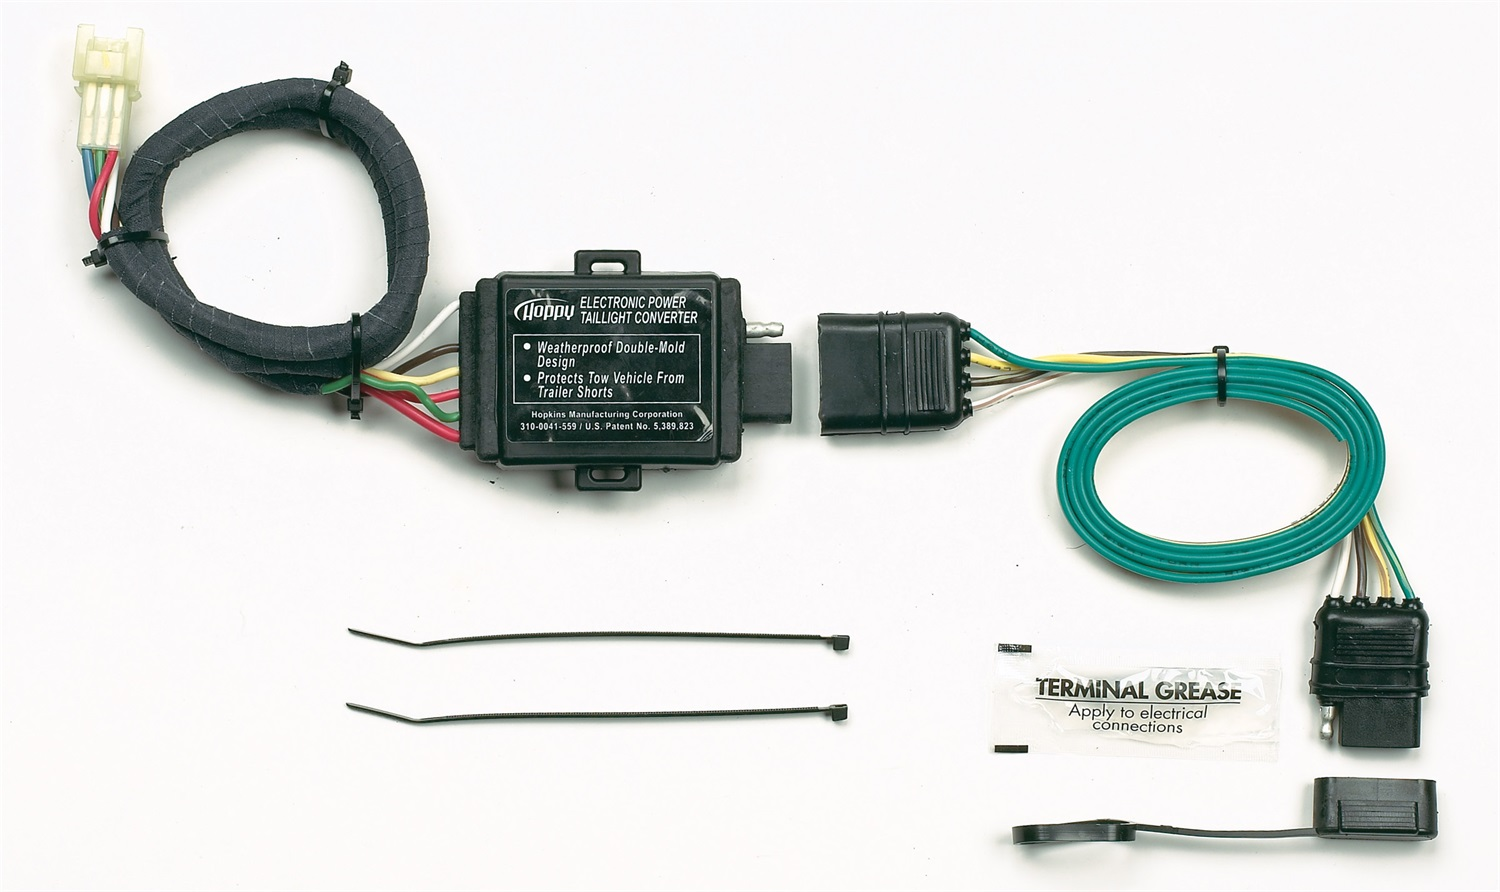 hopkins trailer connector wiring diagram avcr electronic taillight converter 310 0041 559